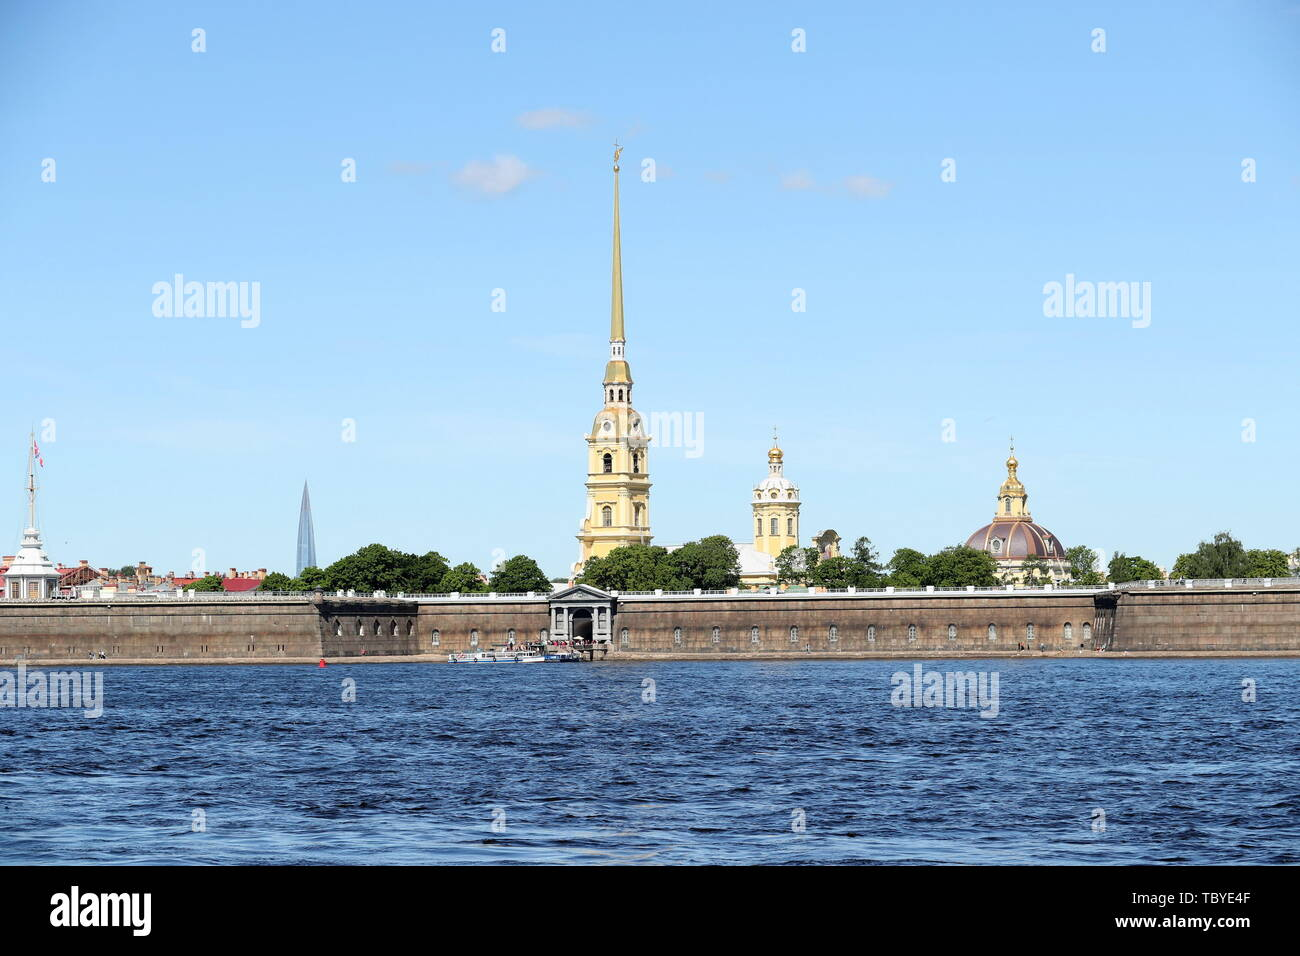 St. Petersburg. 3rd June, 2019. Photo taken on June 3, 2019 shows the Peter and Paul Fortress in St. Petersburg, Russia. Chinese President Xi Jinping will pay a state visit to Russia from June 5 to 7 at the invitation of Russian President Vladimir Putin, a Chinese Foreign Ministry spokesperson announced on Wednesday at a press briefing. Xi will also attend the 23rd St. Petersburg International Economic Forum during his stay, according to spokesperson Lu Kang. Credit: Lu Jinbo/Xinhua/Alamy Live News - Stock Image